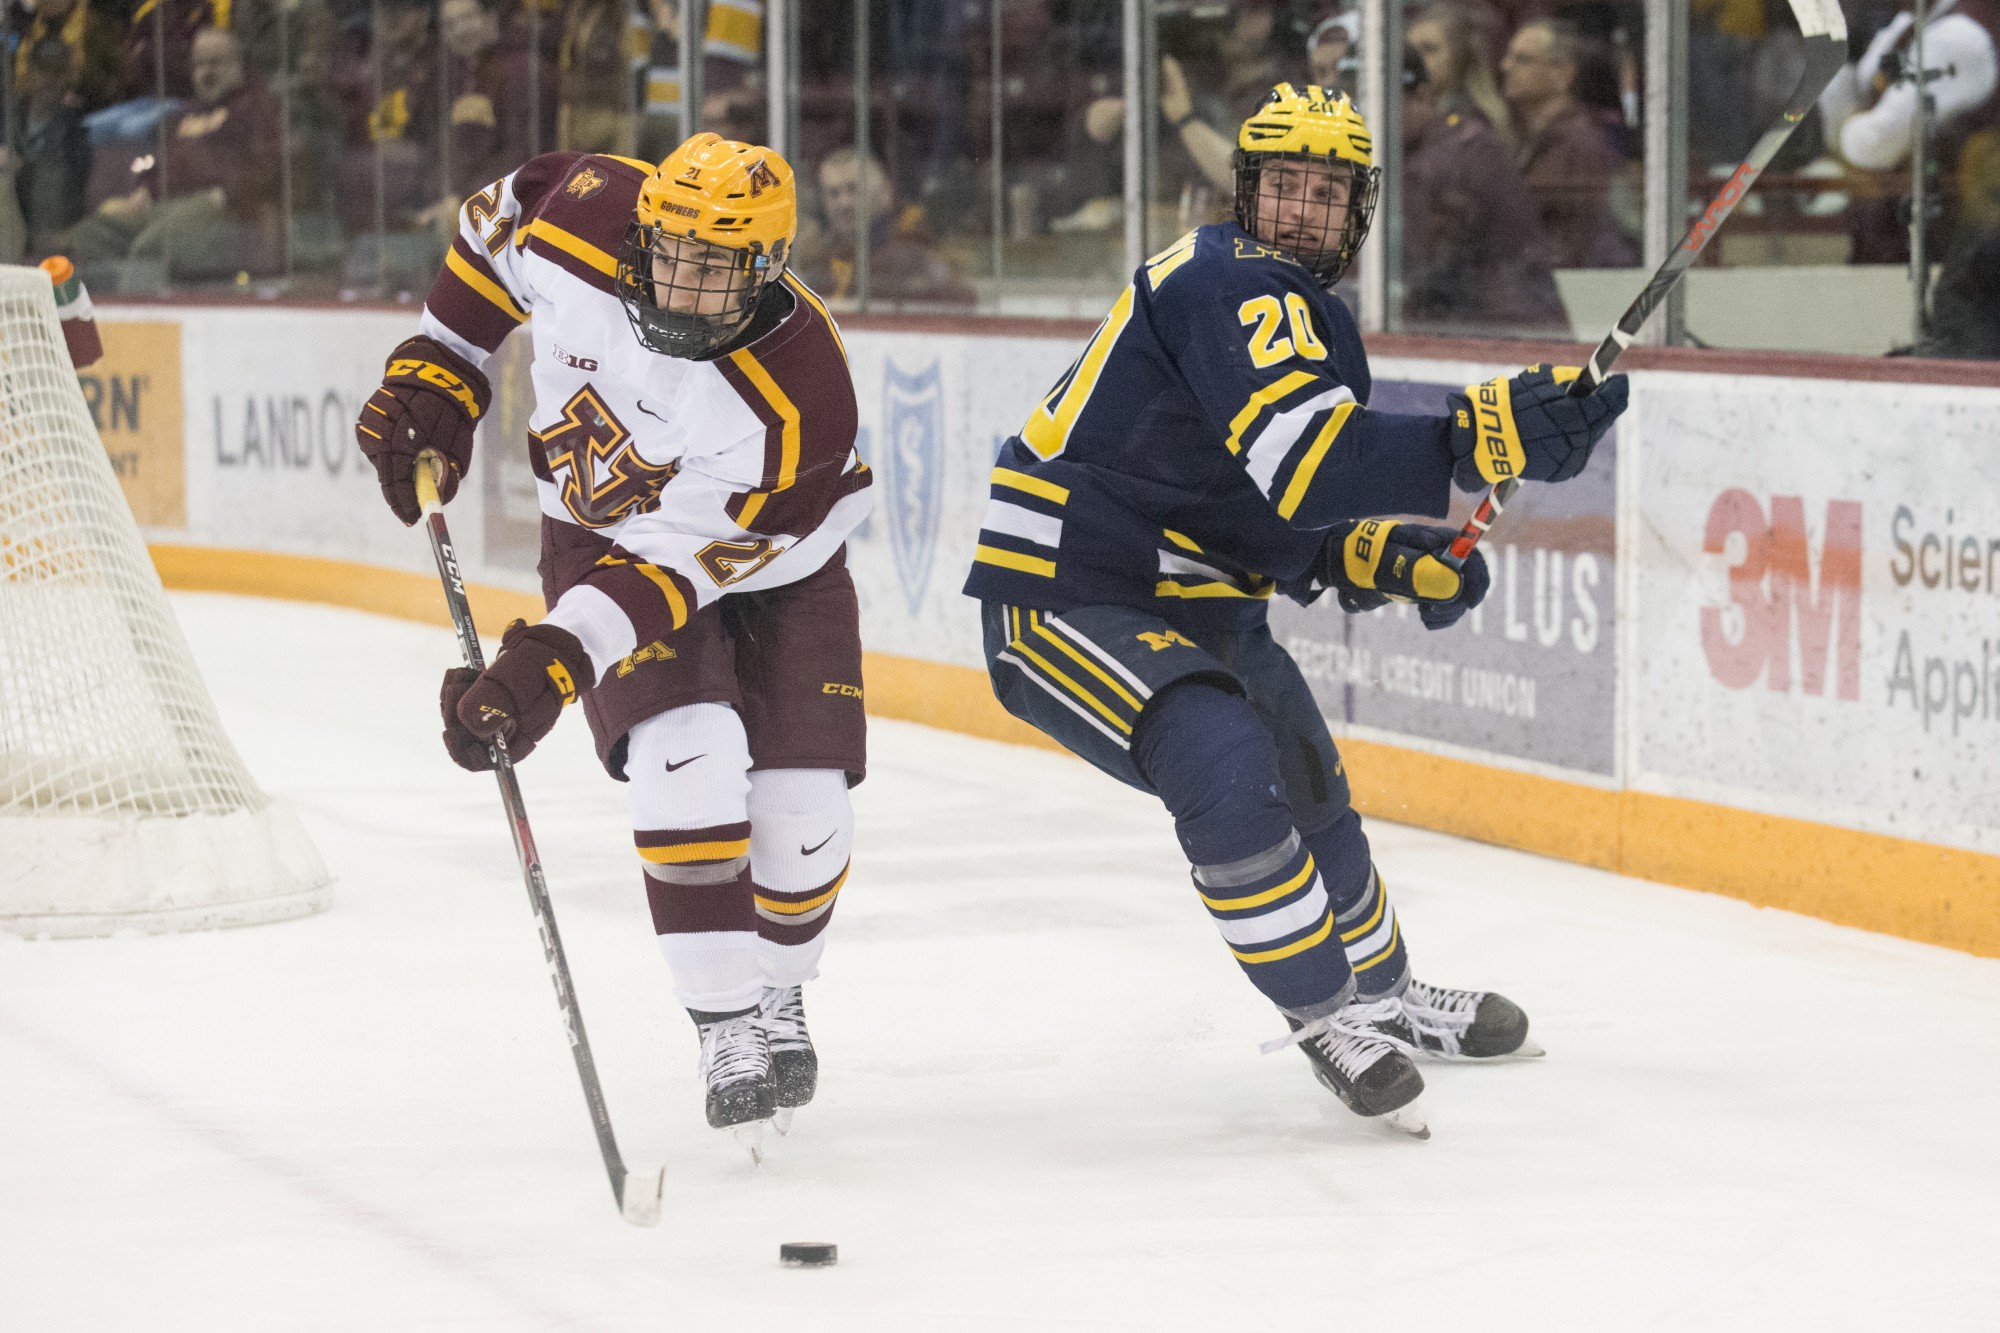 Gophers Forward Nathan Burke lines up a pass at the 3M Arena at Mariucci on Friday, Feb. 28. The Gophers lost to Michigan 3-2.